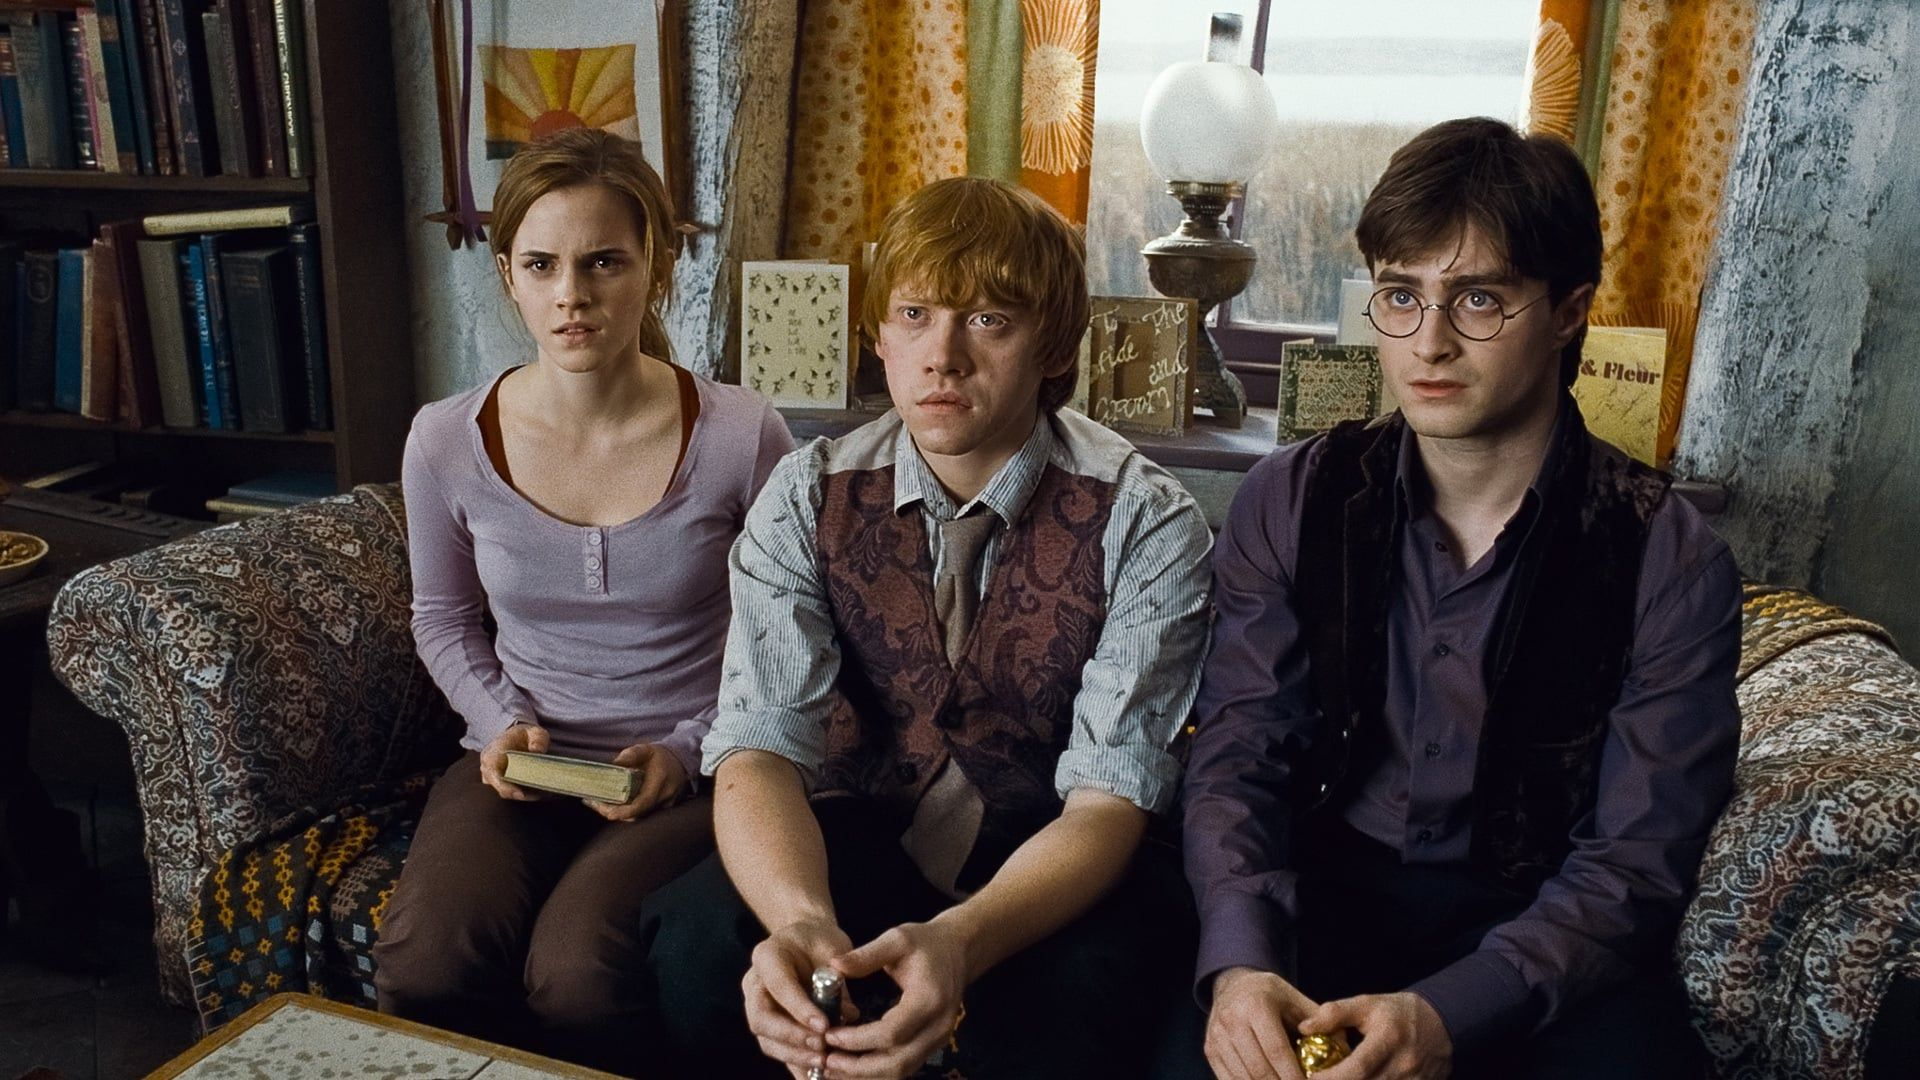 Watch Harry Potter And The Deathly Hallows Part 1 2010 Full Movie Online Free Harry Ron And Harry Potter Quiz Harry Potter Movies Deathly Hallows Part 1